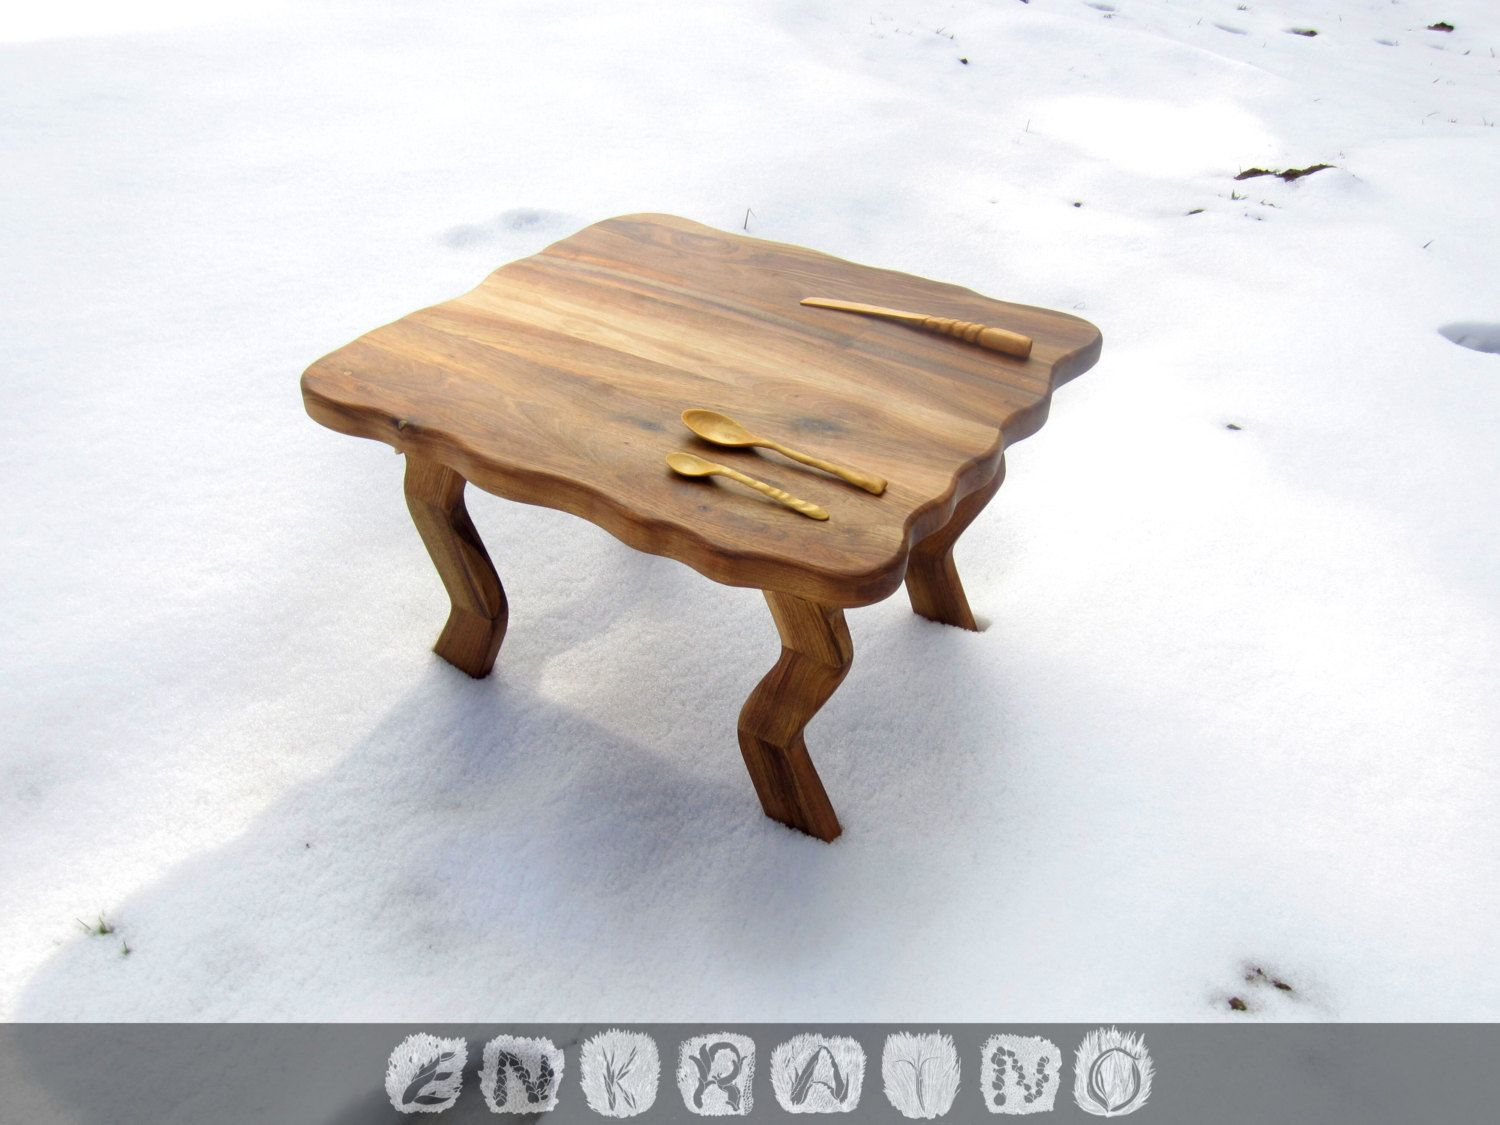 Unique Coffee Table Walnut Hand Made Wooden Legs Furniture Side Table Legs Wood Unique Hand Carve Unique Coffee Table Walnut Coffee Table Handmade Coffee Table [ 1125 x 1500 Pixel ]